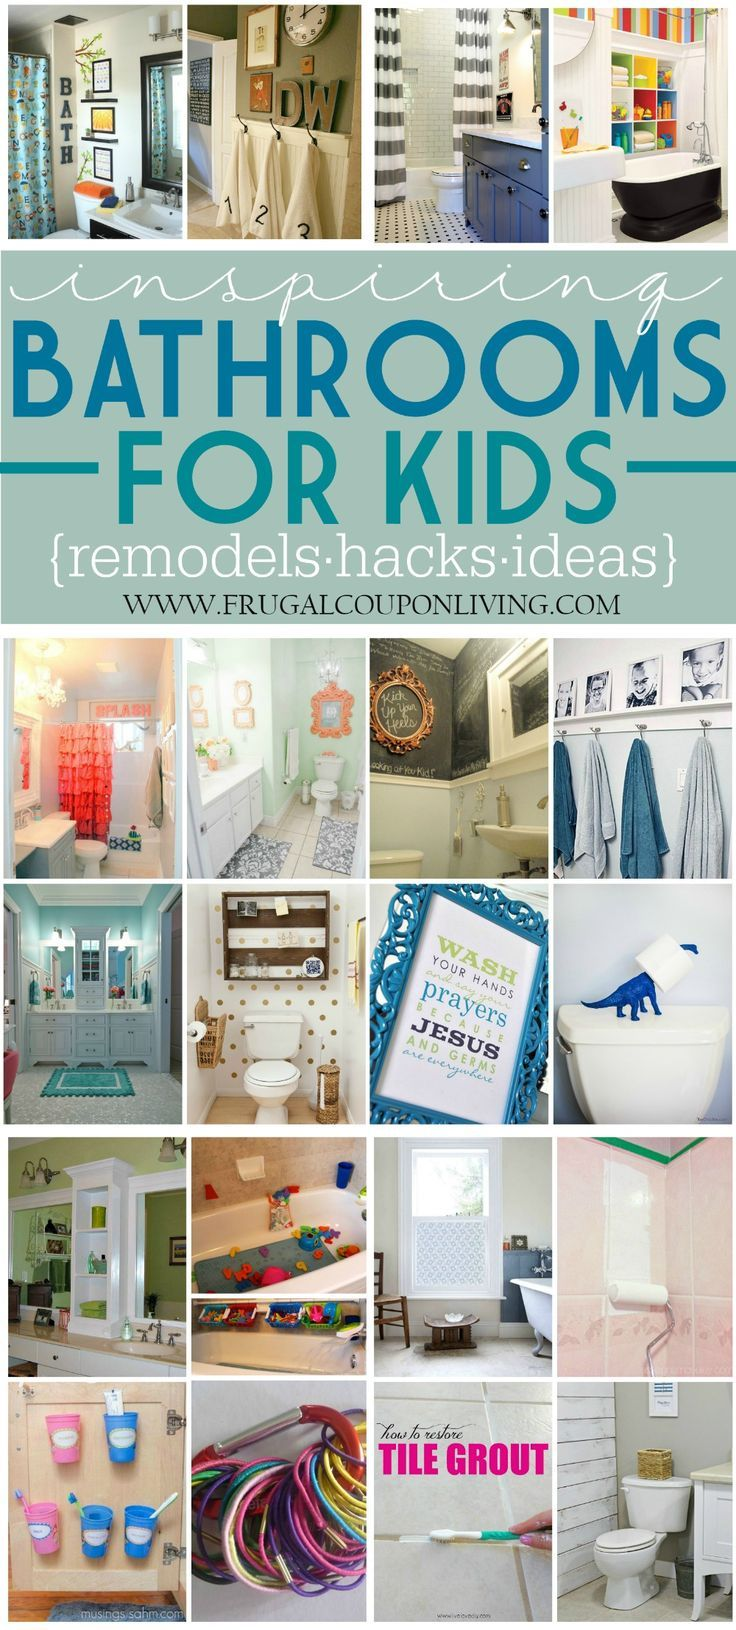 Inspiring Kids Bathrooms Remodels And Hacks Bathroom Kids Kid